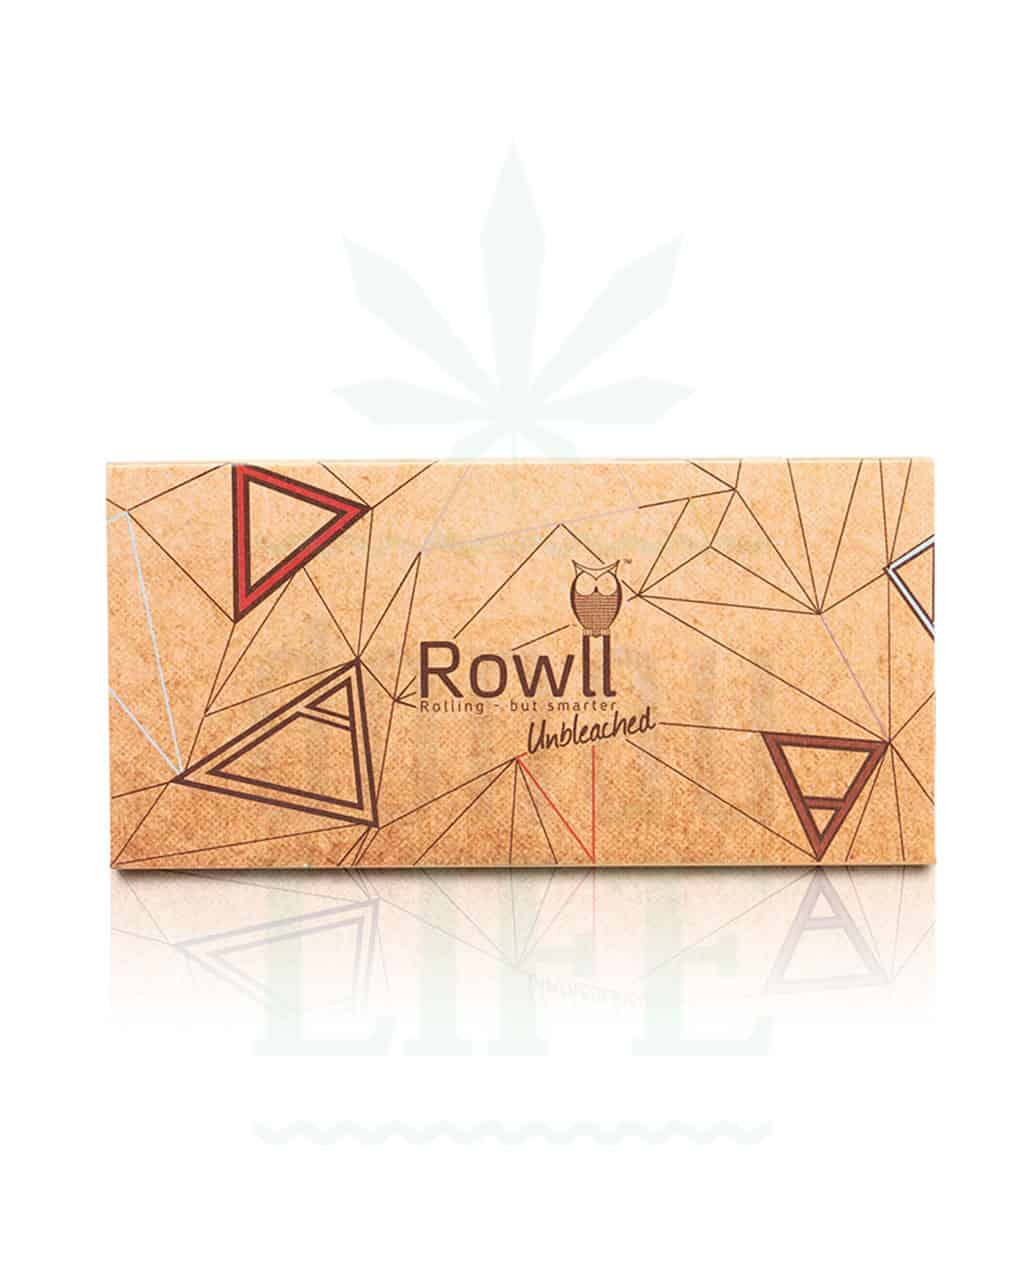 aus Hanf ROWLL Papers + Tips + Grinder | All in 1 Kit